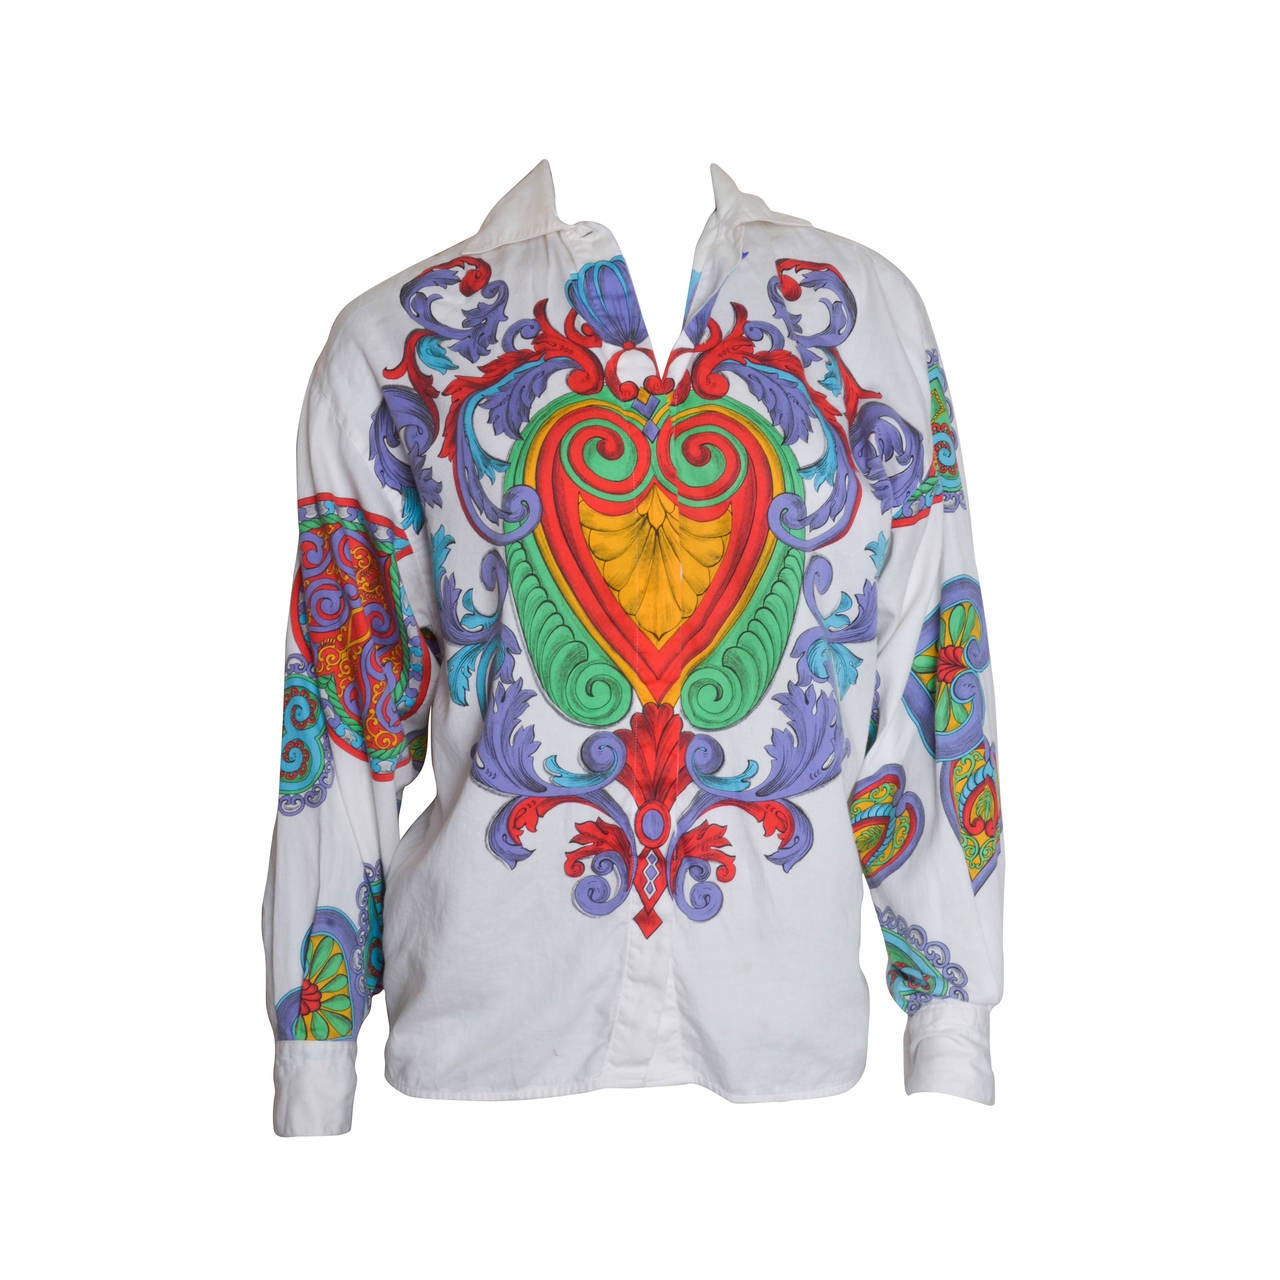 Versace Versus Scarf Print Hearts Blouse For Sale